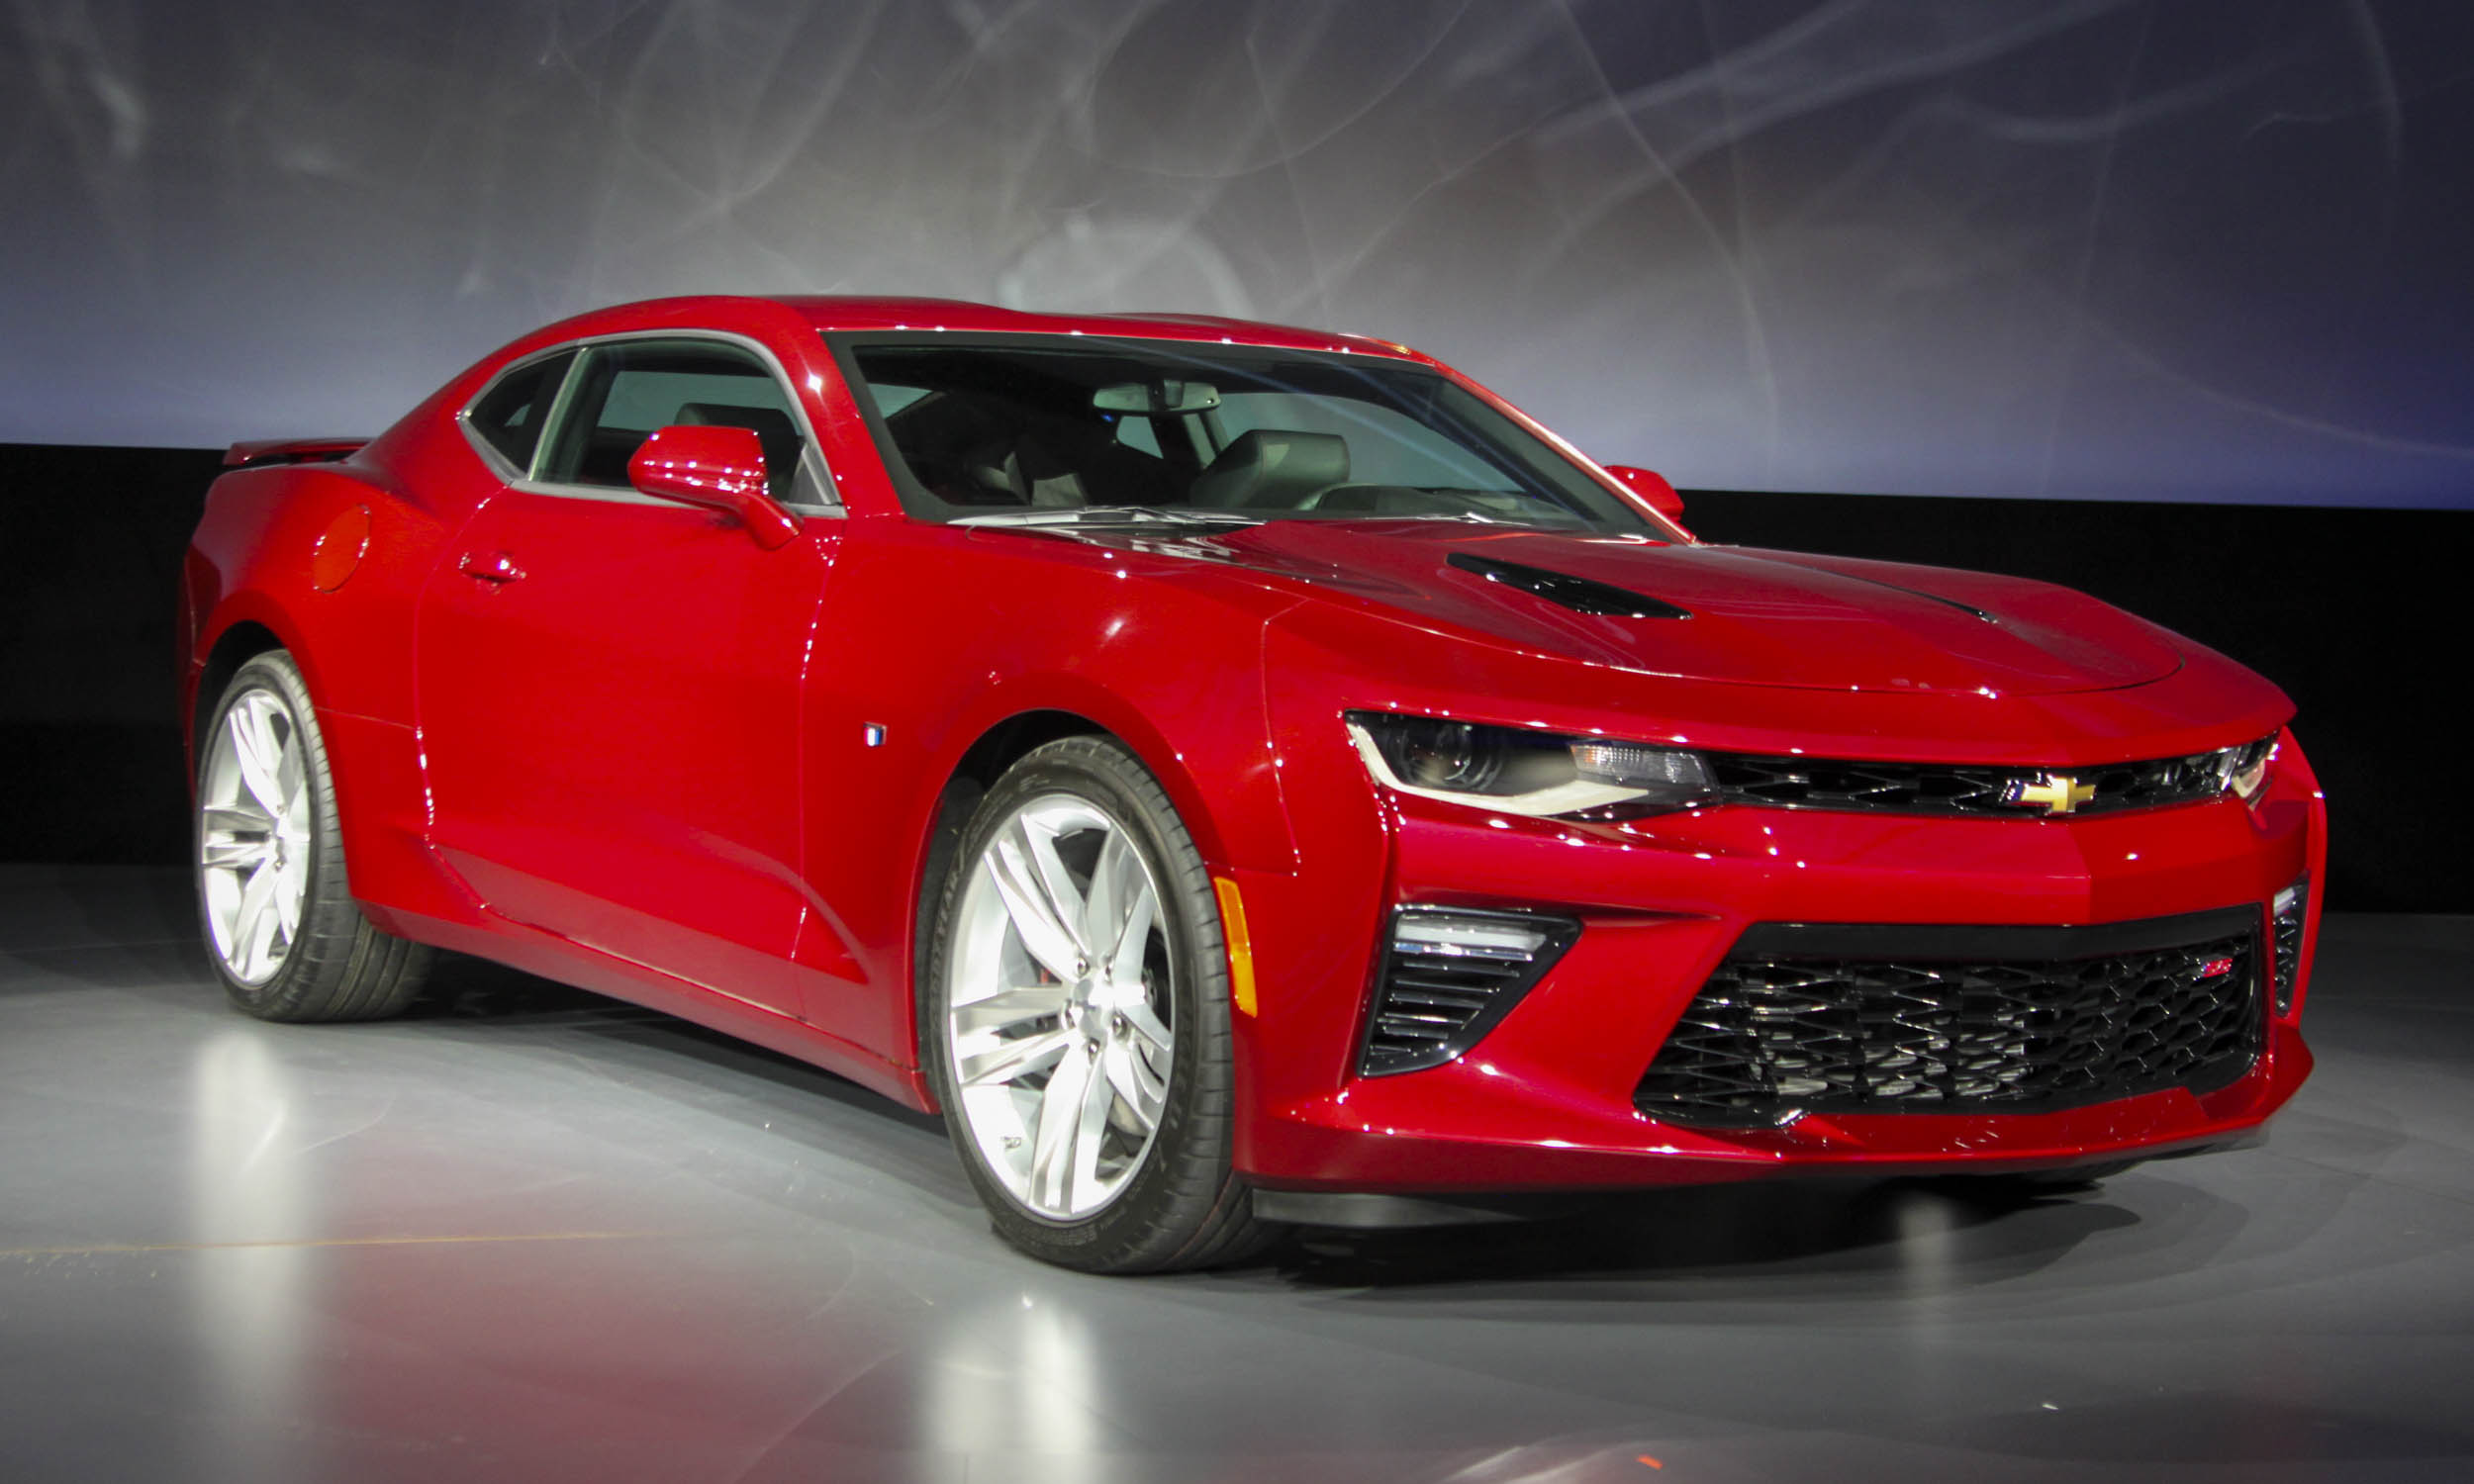 2016 Chevrolet Camaro Ss Front Side Exterior Preview (Photo 52 of 54)